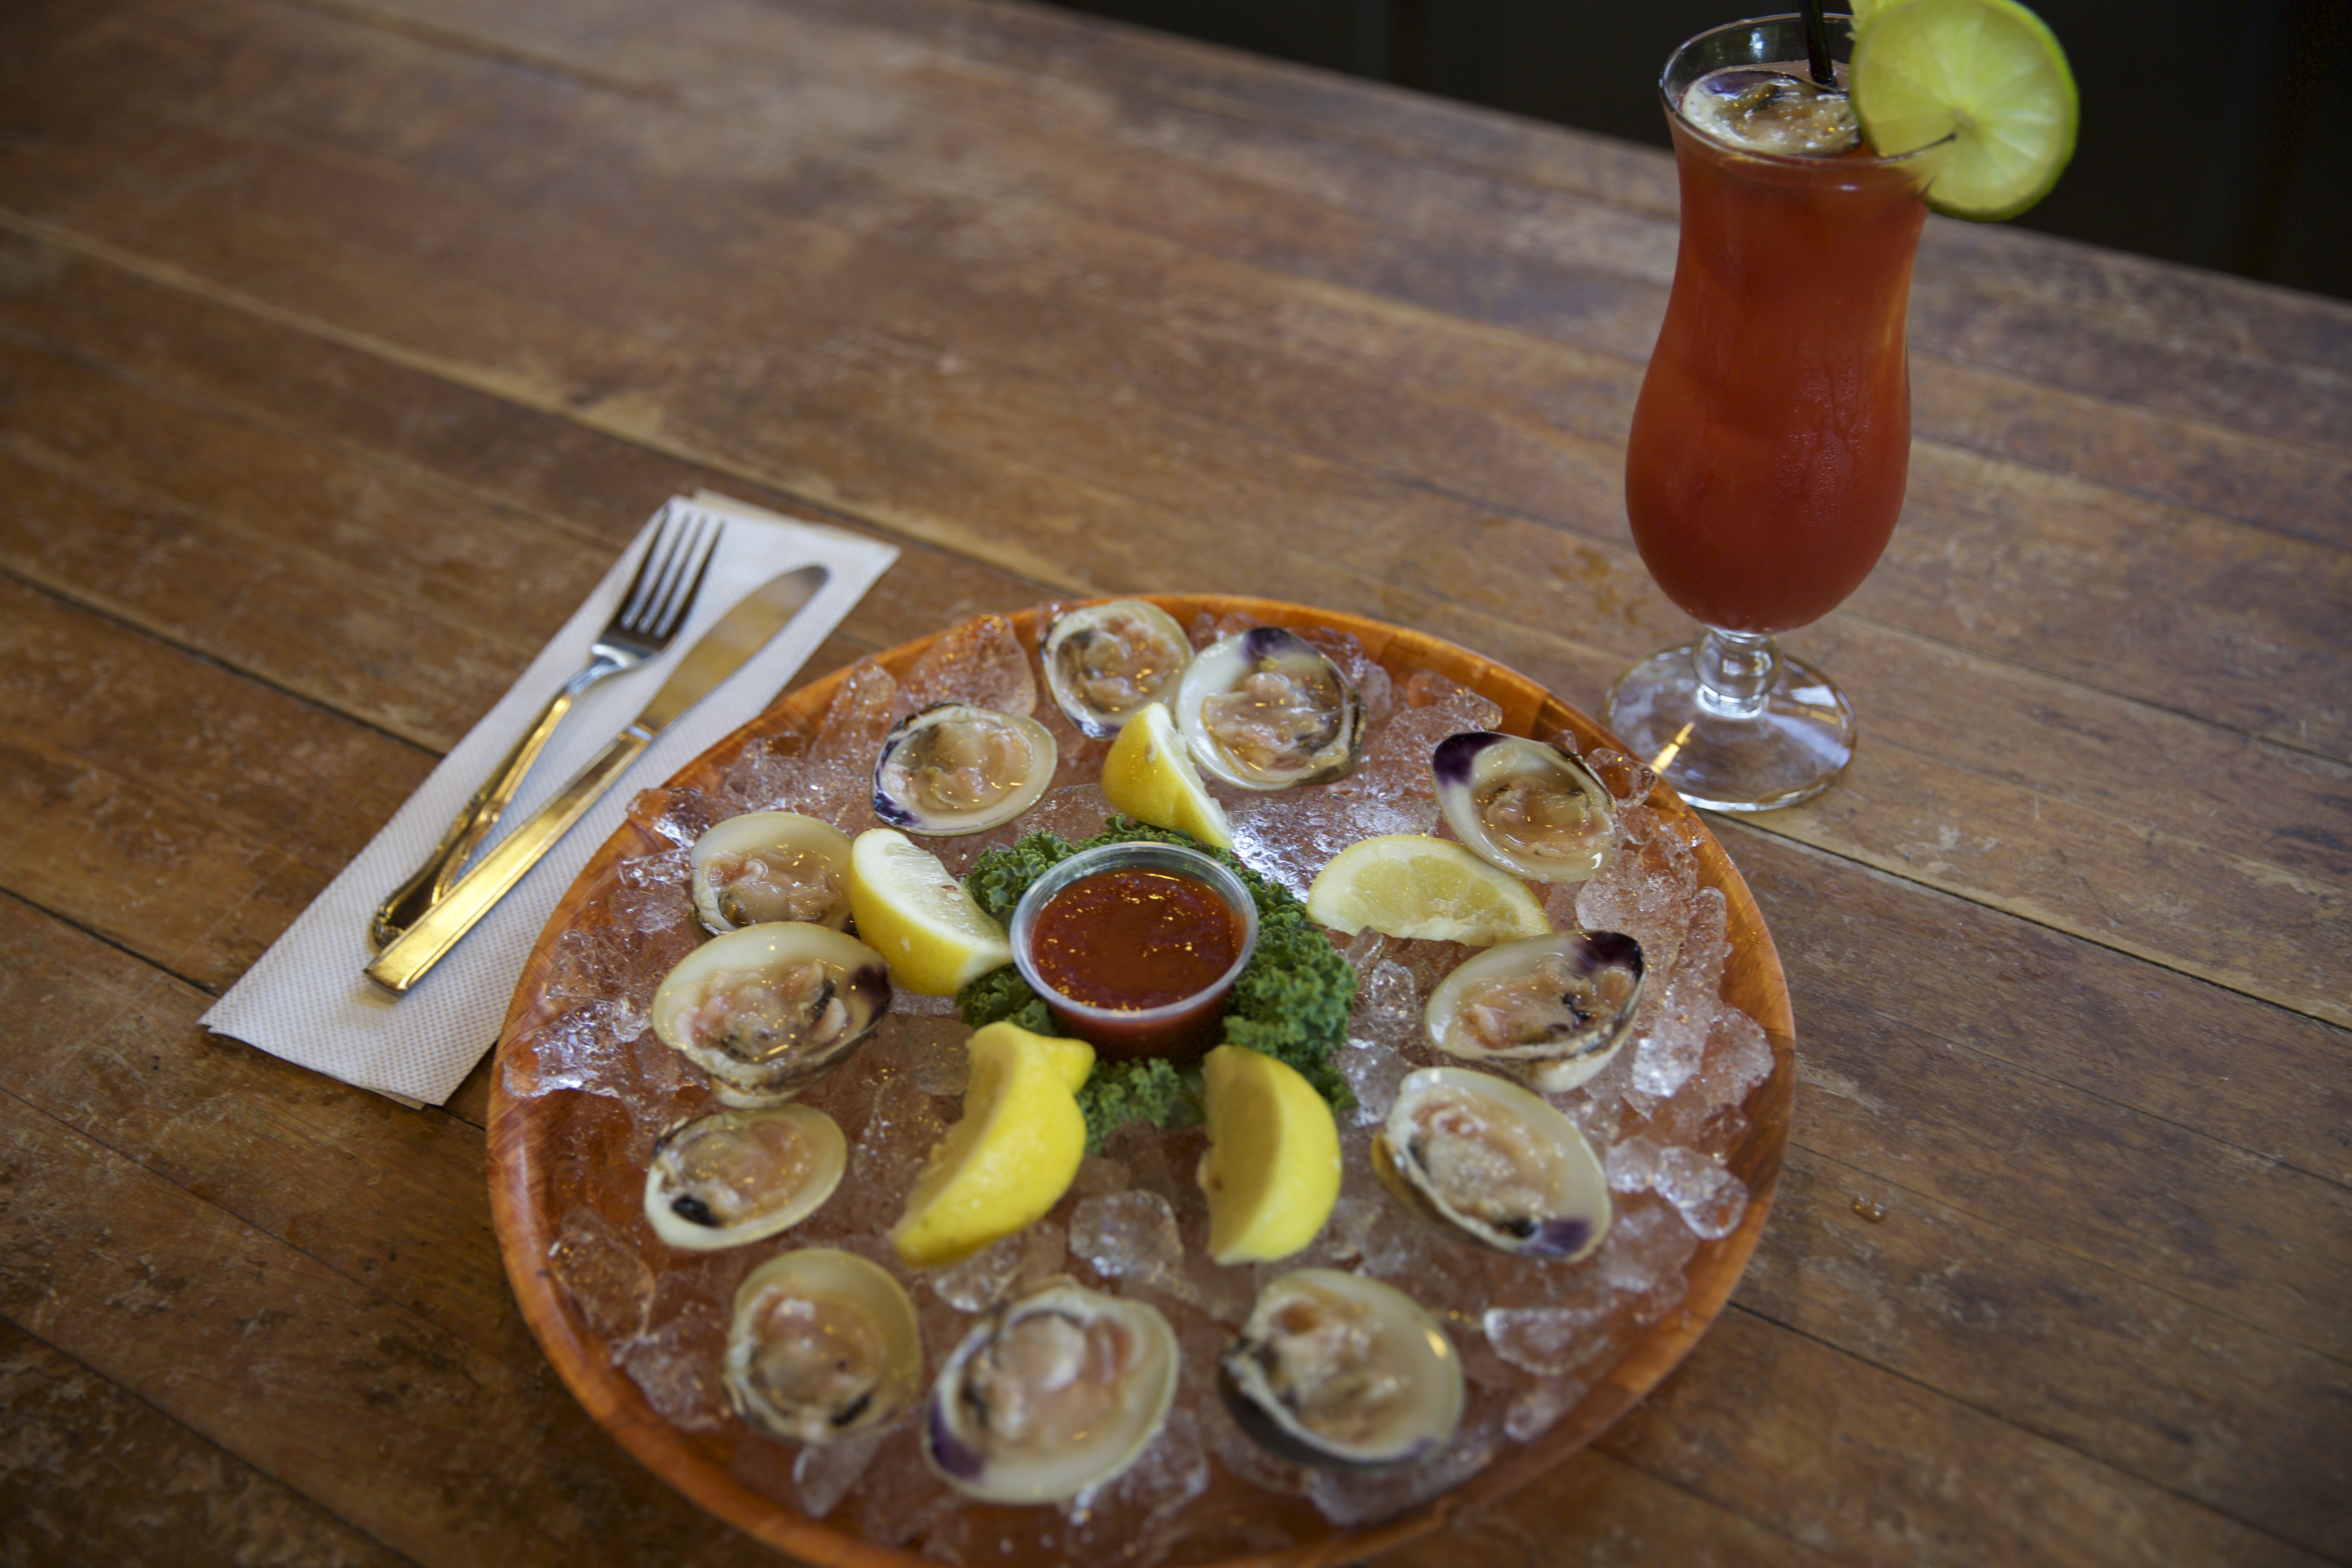 Oyster Plater